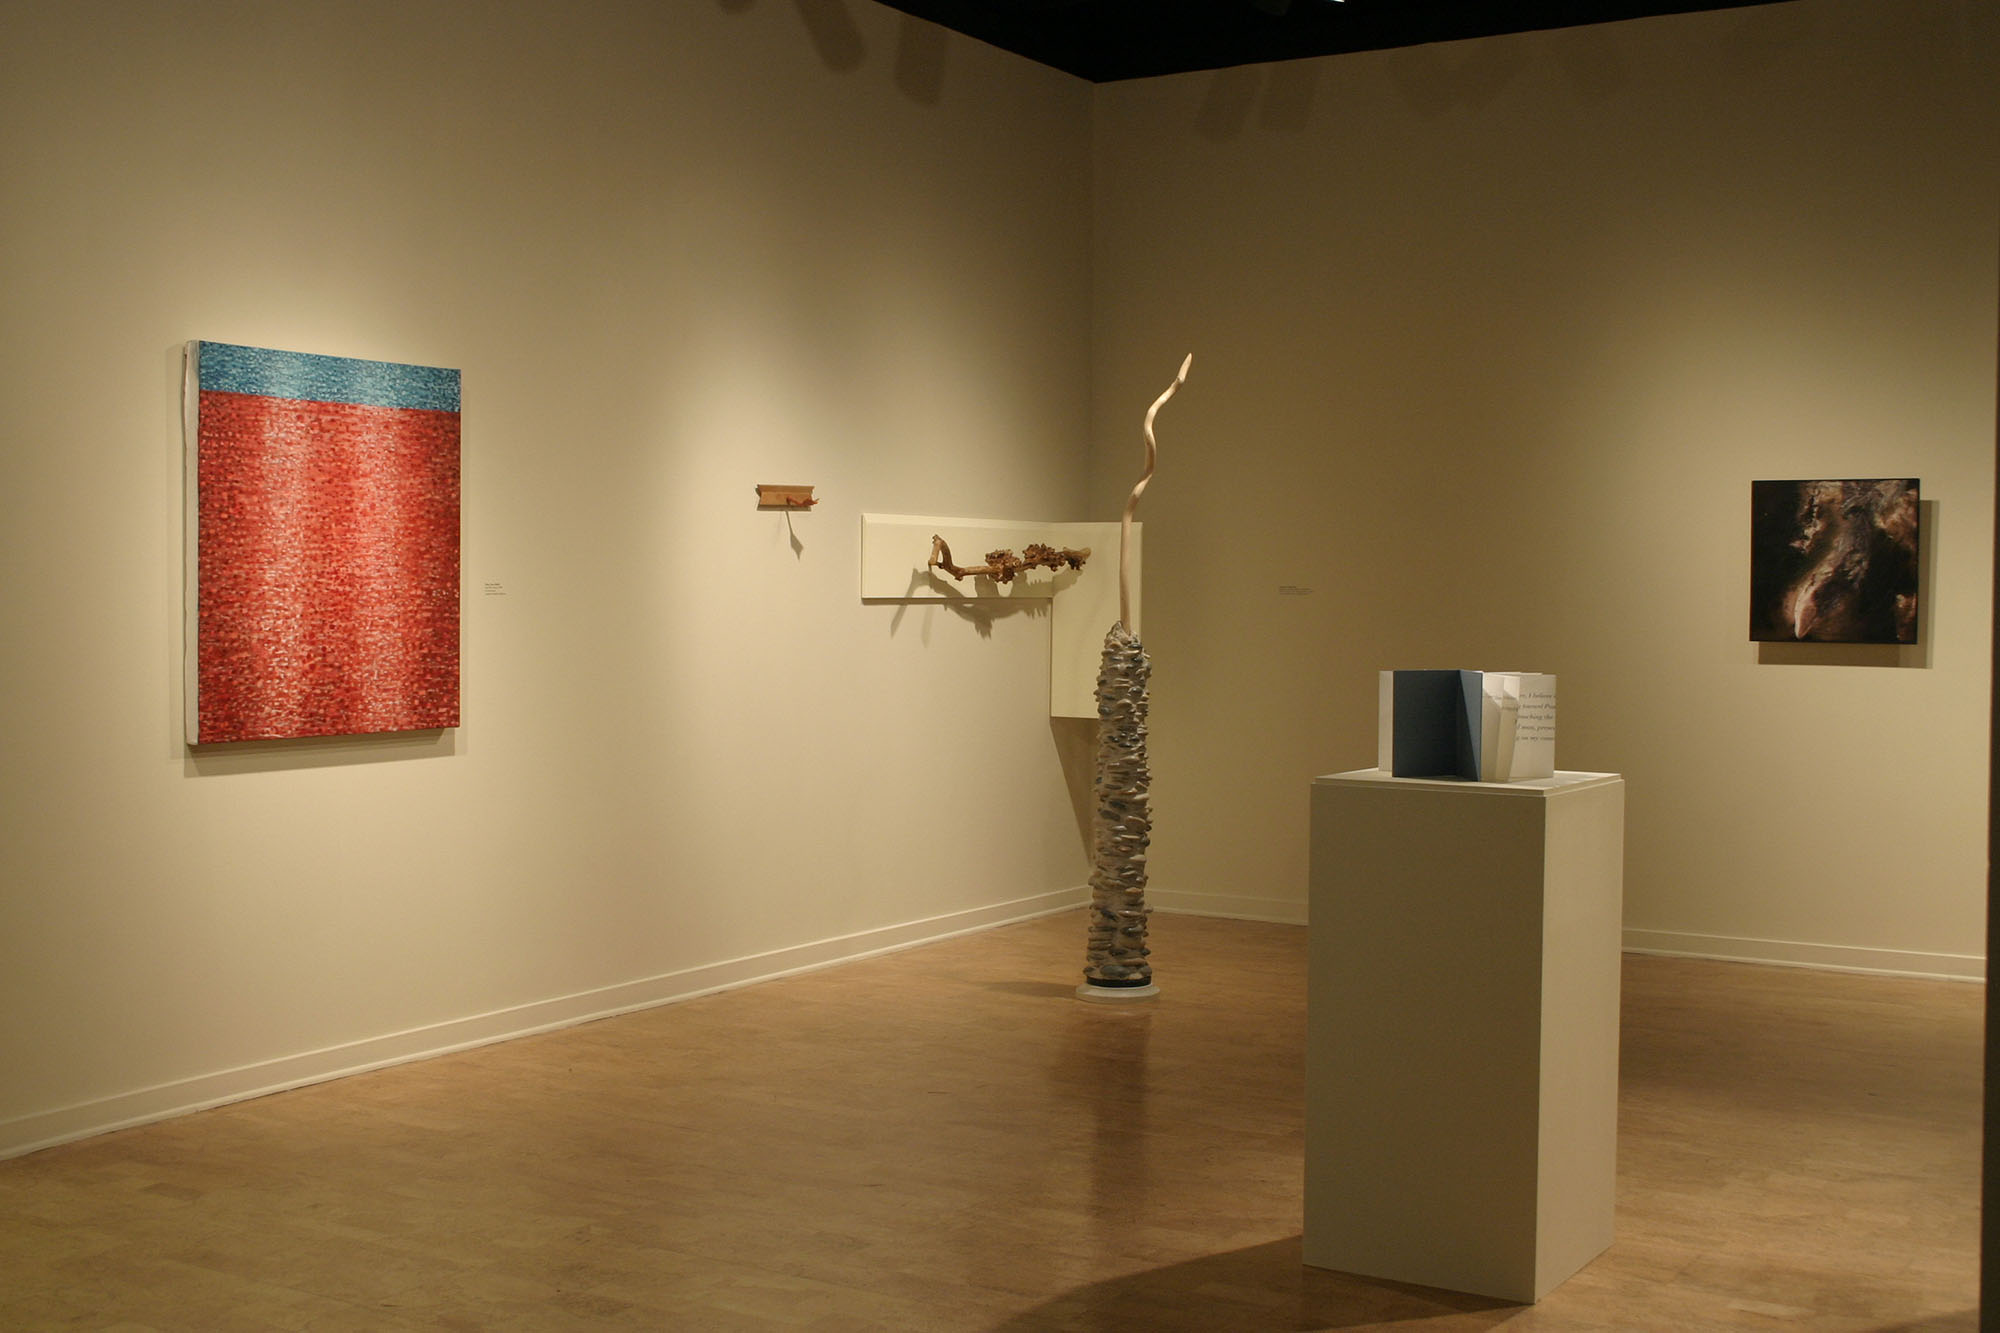 Installation view at the DePaul University Art Gallery